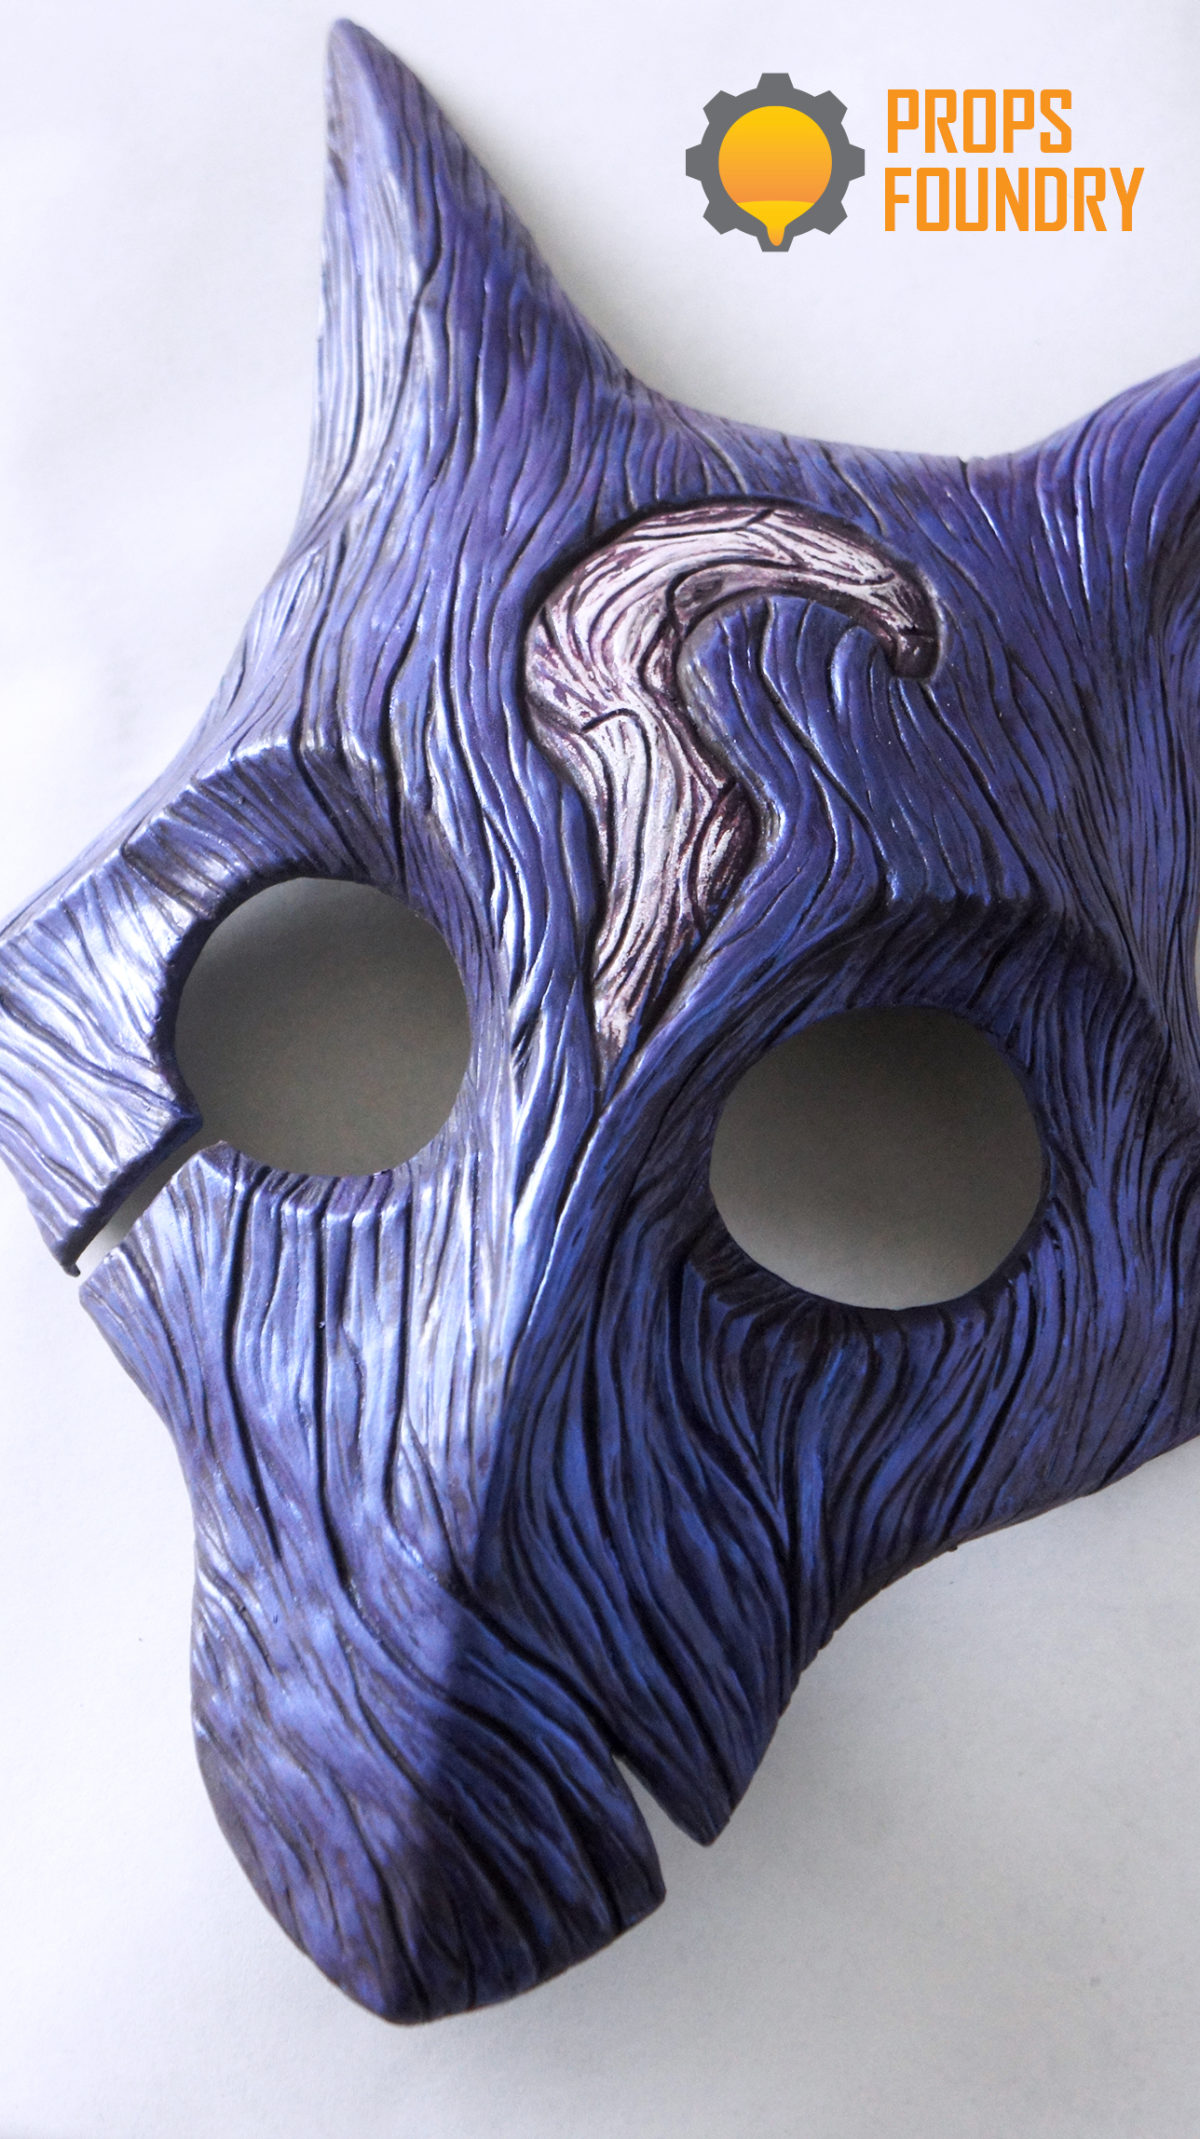 Kindred Mask League of Legends